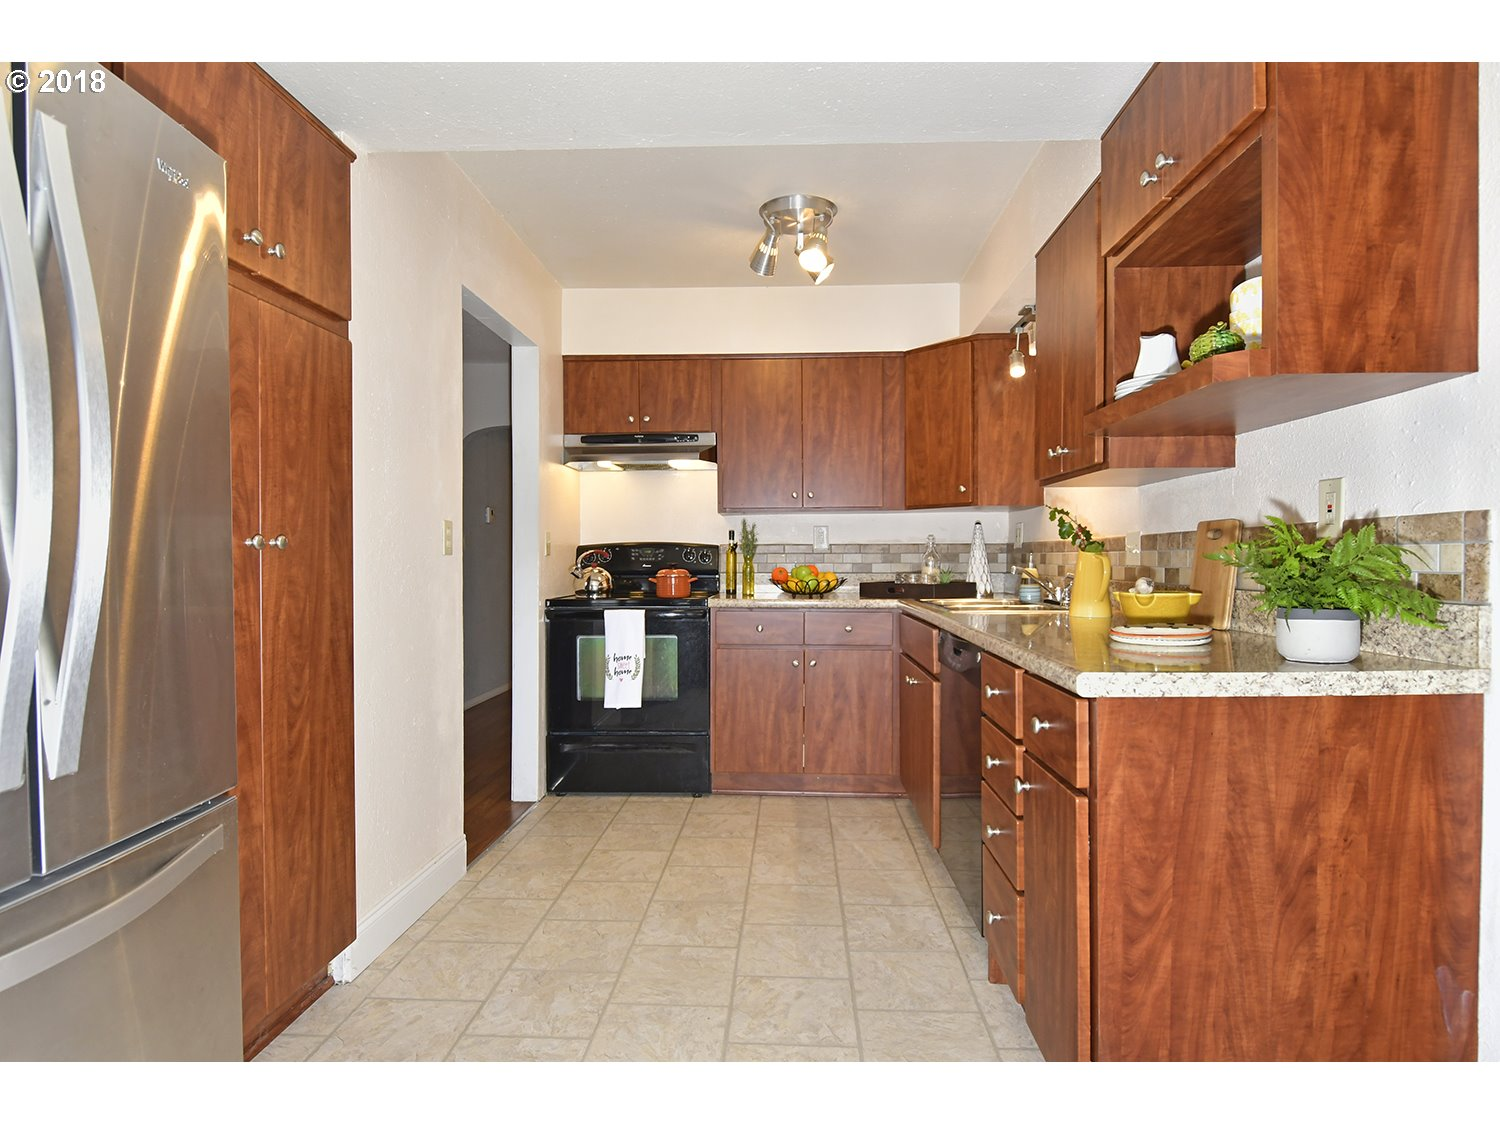 1100 sq. ft 3 bedrooms 1 bathrooms  House For Sale, Portland, OR